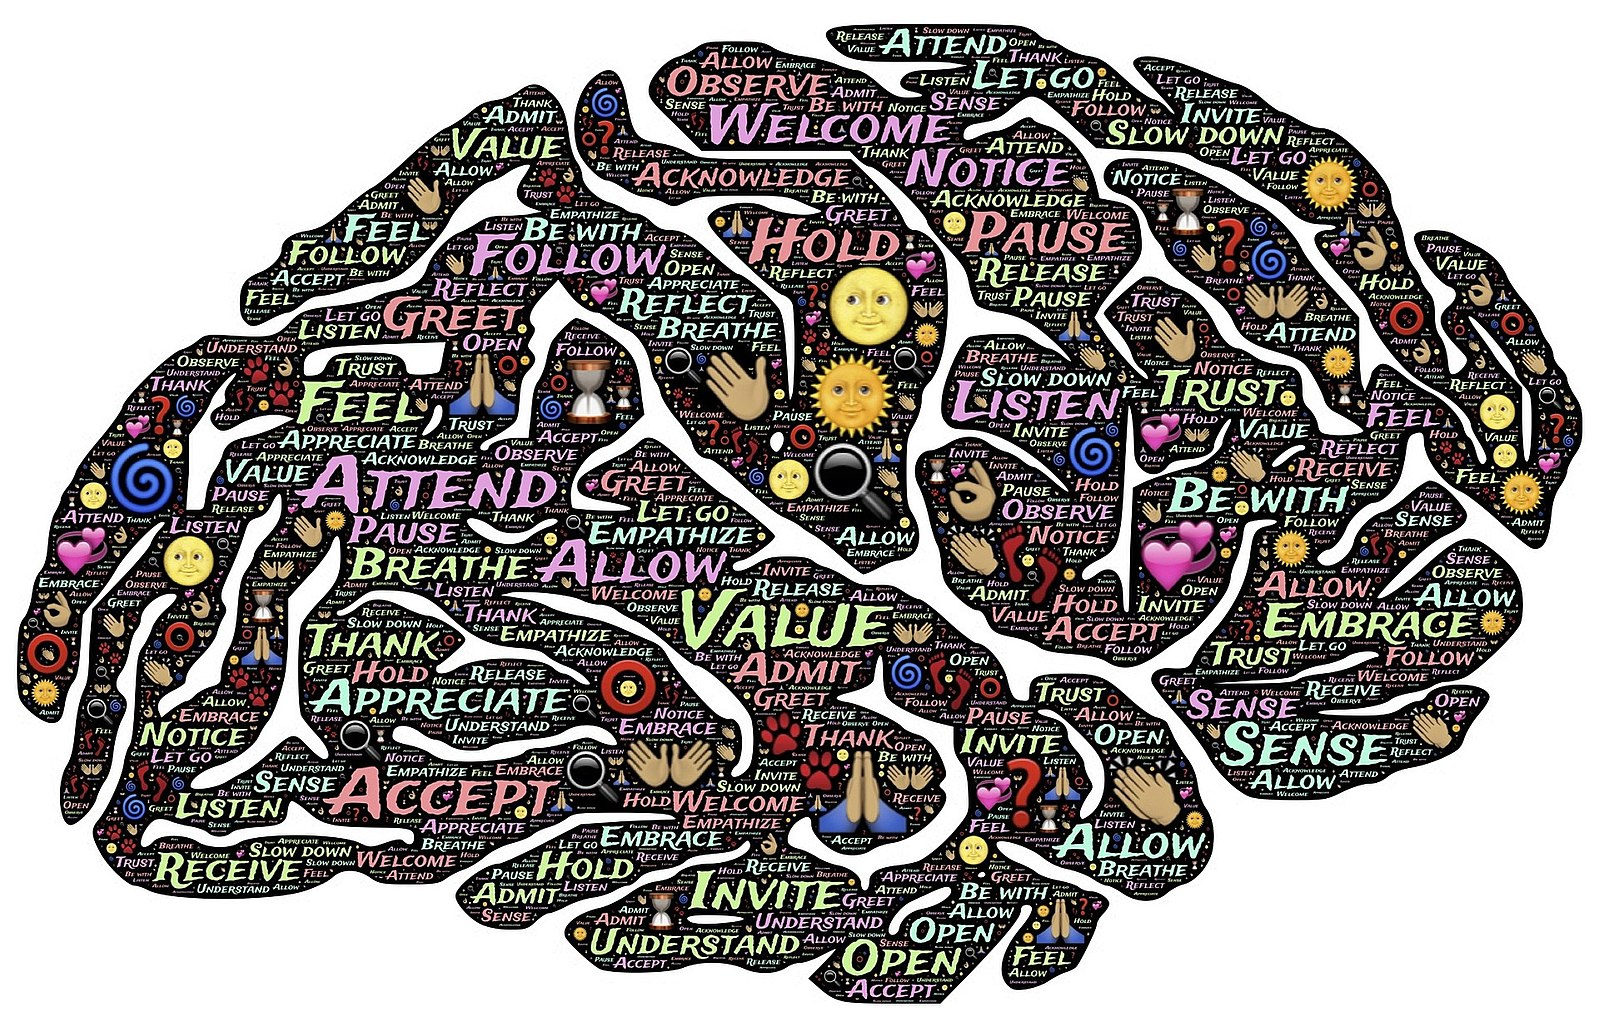 drawing of a brain with words related to mindfulness in it